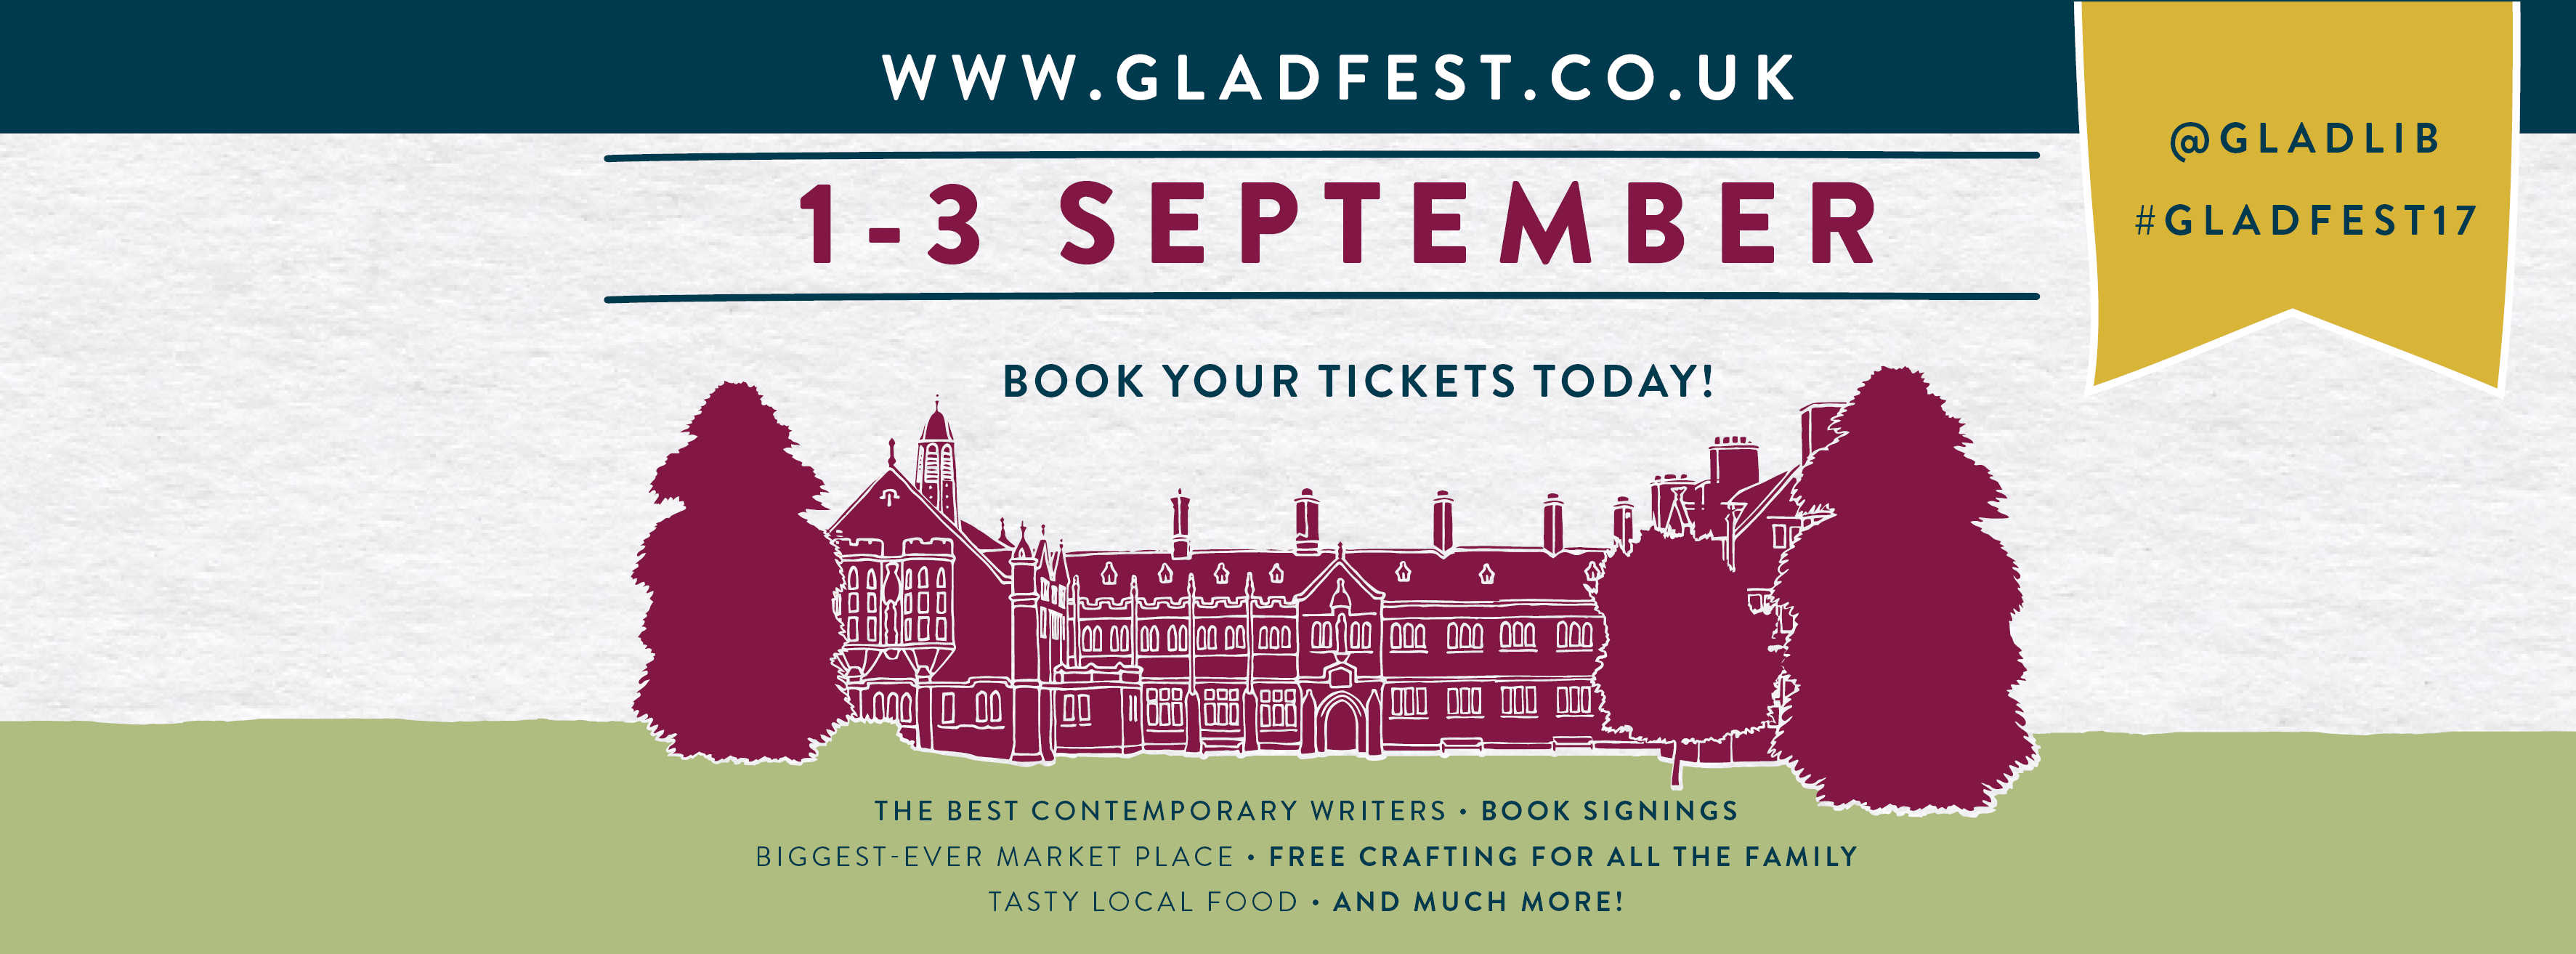 Gladfest tickets onsale now!